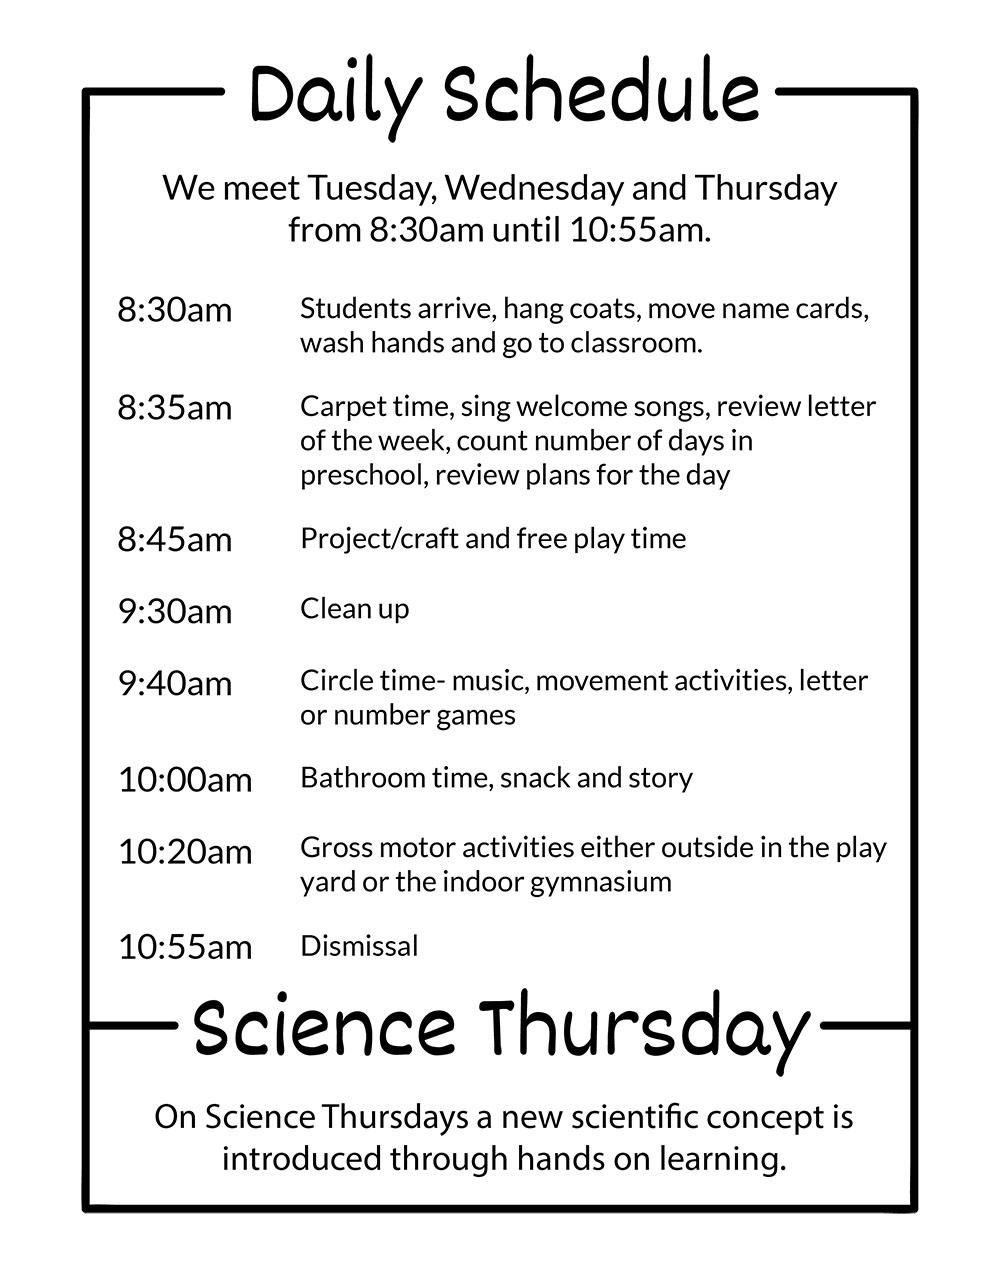 RPC Preschool in Riverside, Illinois Daily Schedule